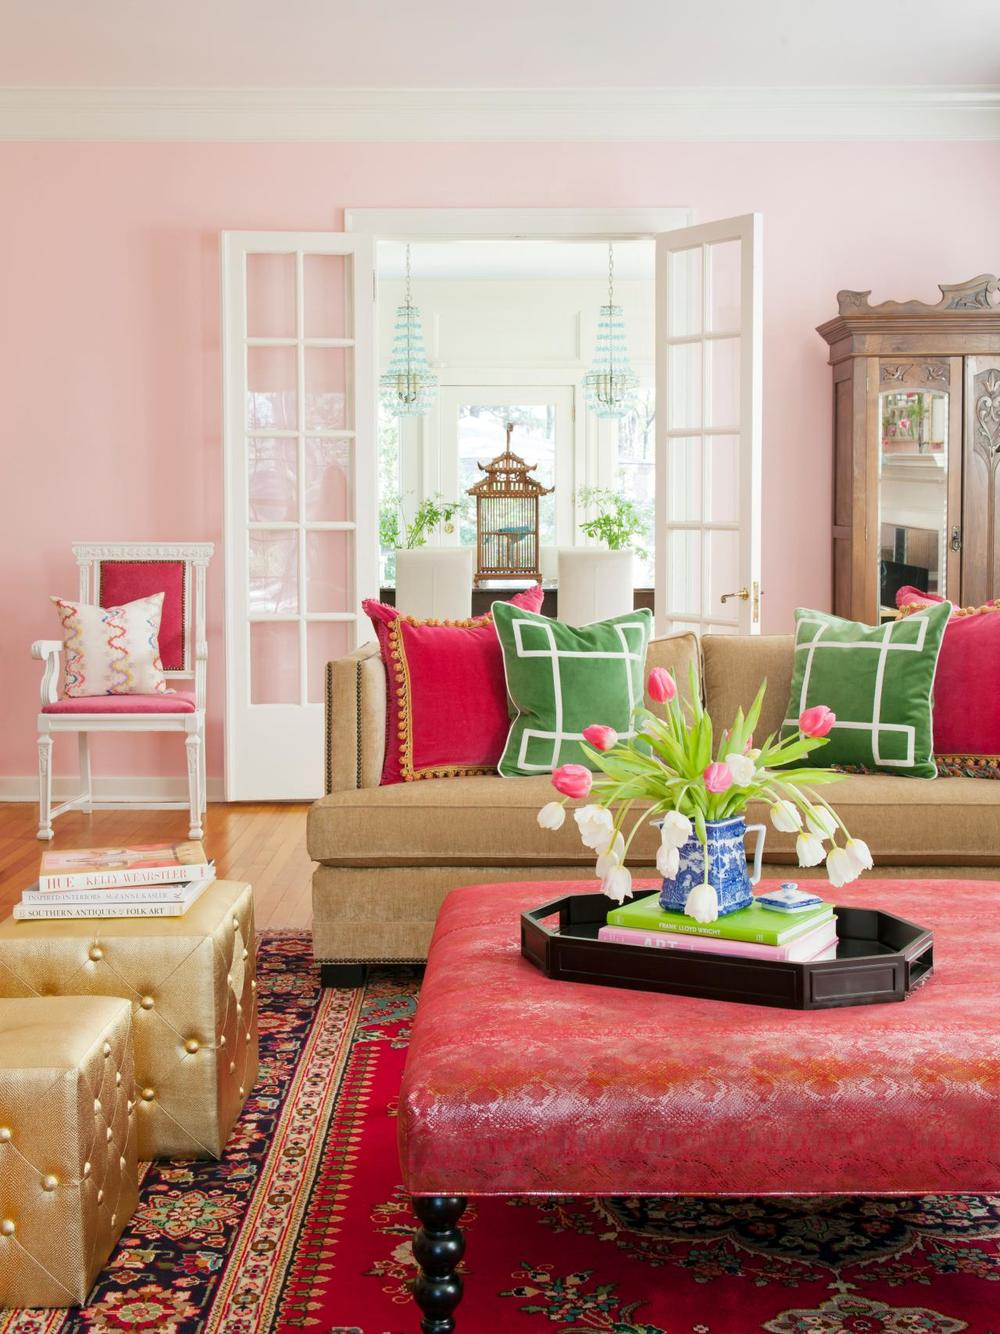 IMAGE SOURCE: HGTV     DESIGNER: Andrea Brooks     PHOTO by Nancy Nolan Photography